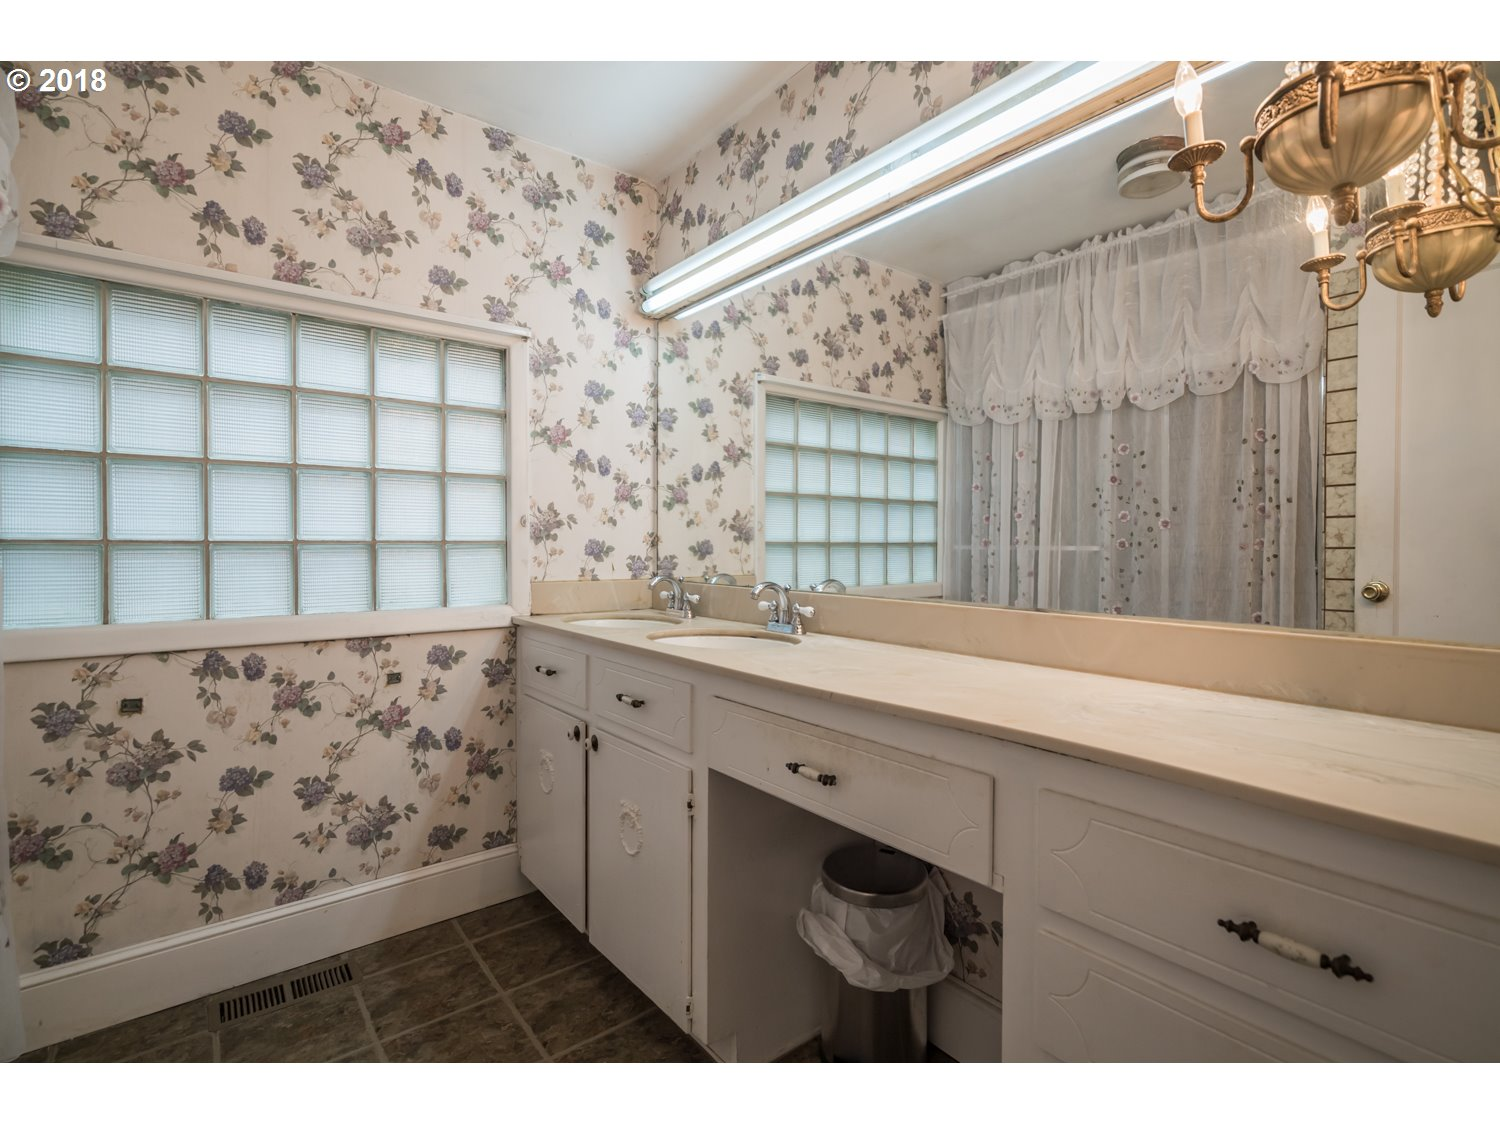 3030 SE 45TH AVE Portland, OR 97206 - MLS #: 18481594